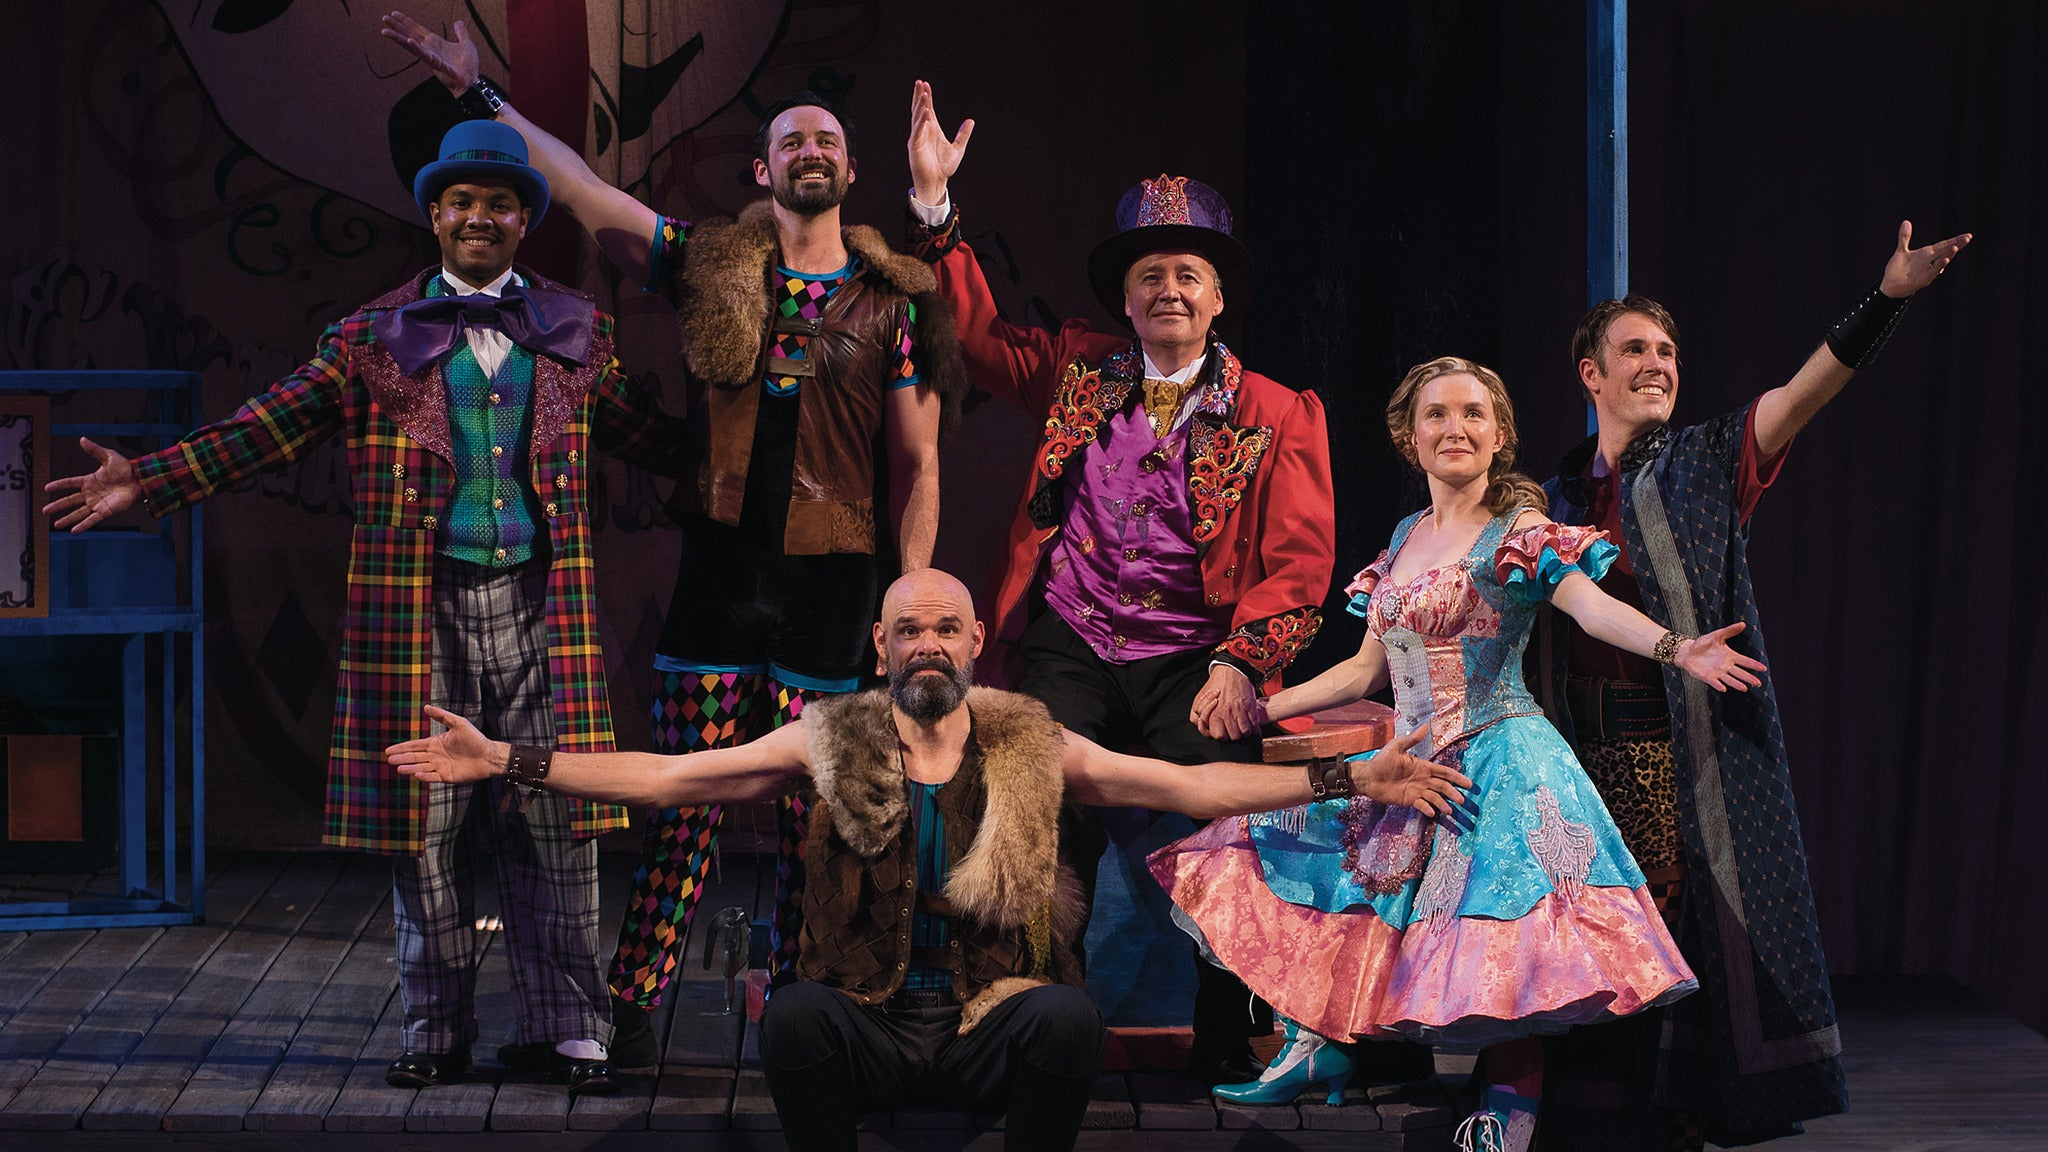 The Merry Wives of Windsor at Ewing Theatre